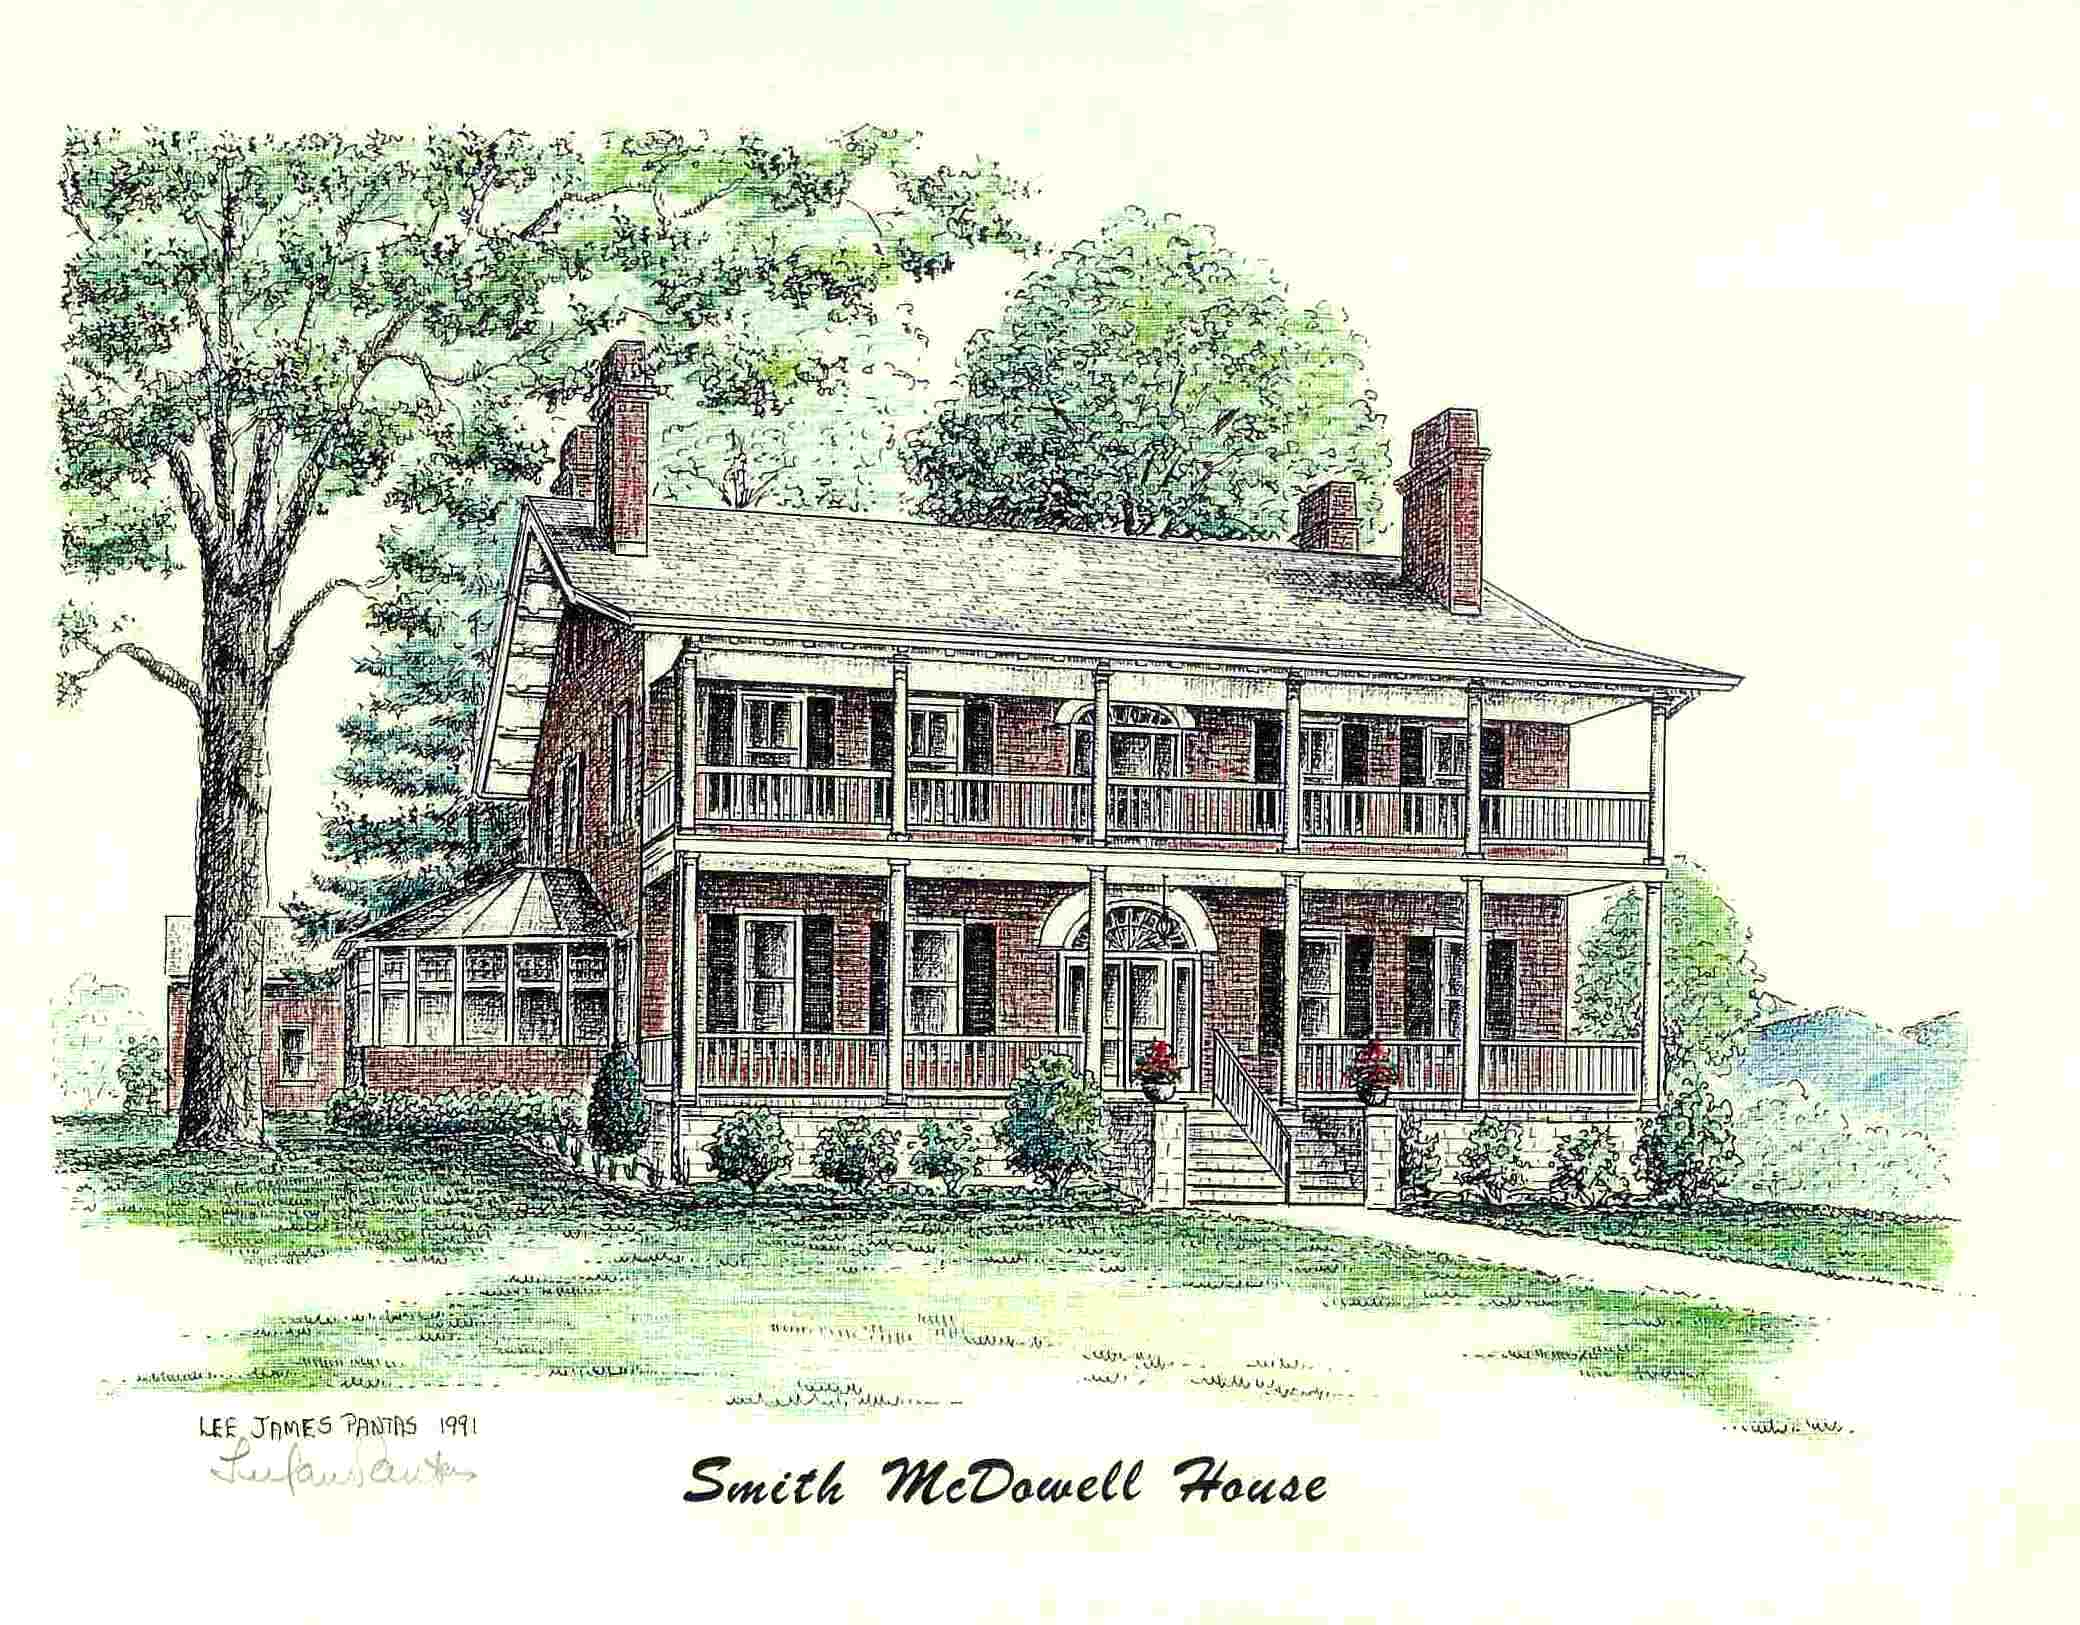 Smith mcdowell house pen ink drawing by lee james pantas